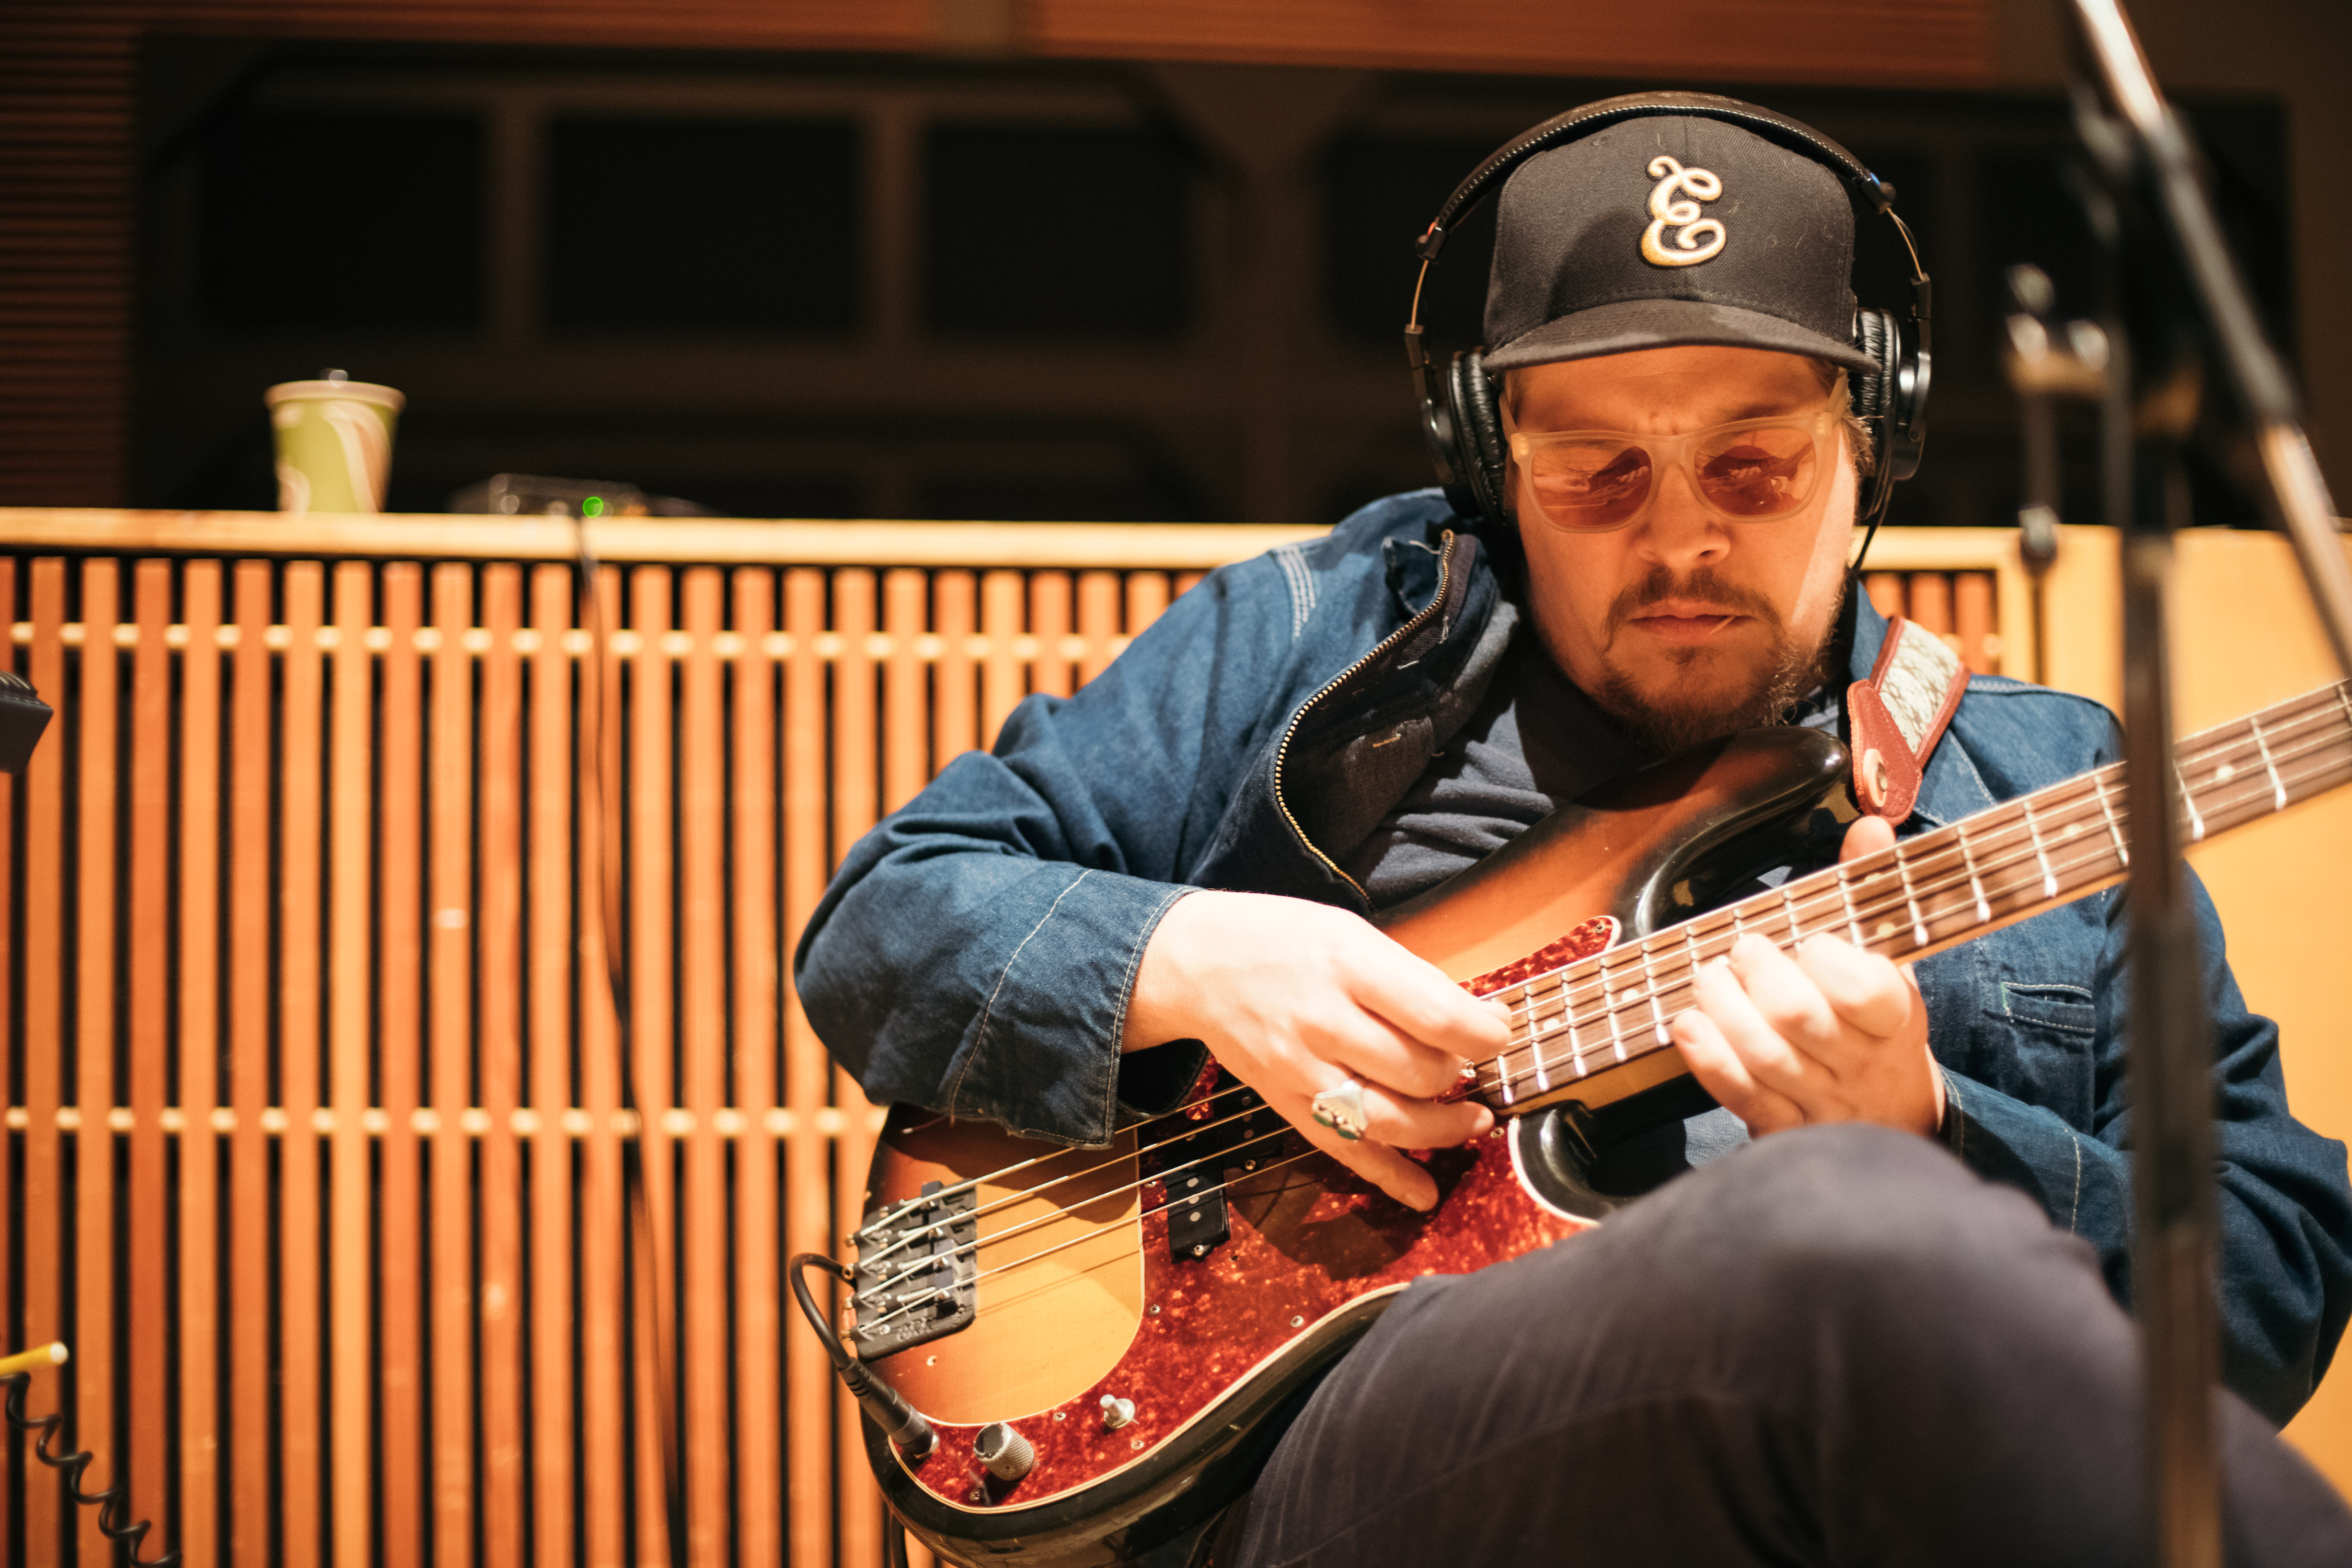 Mike Lewis in studio // Photo by Nate Ryan, MPR